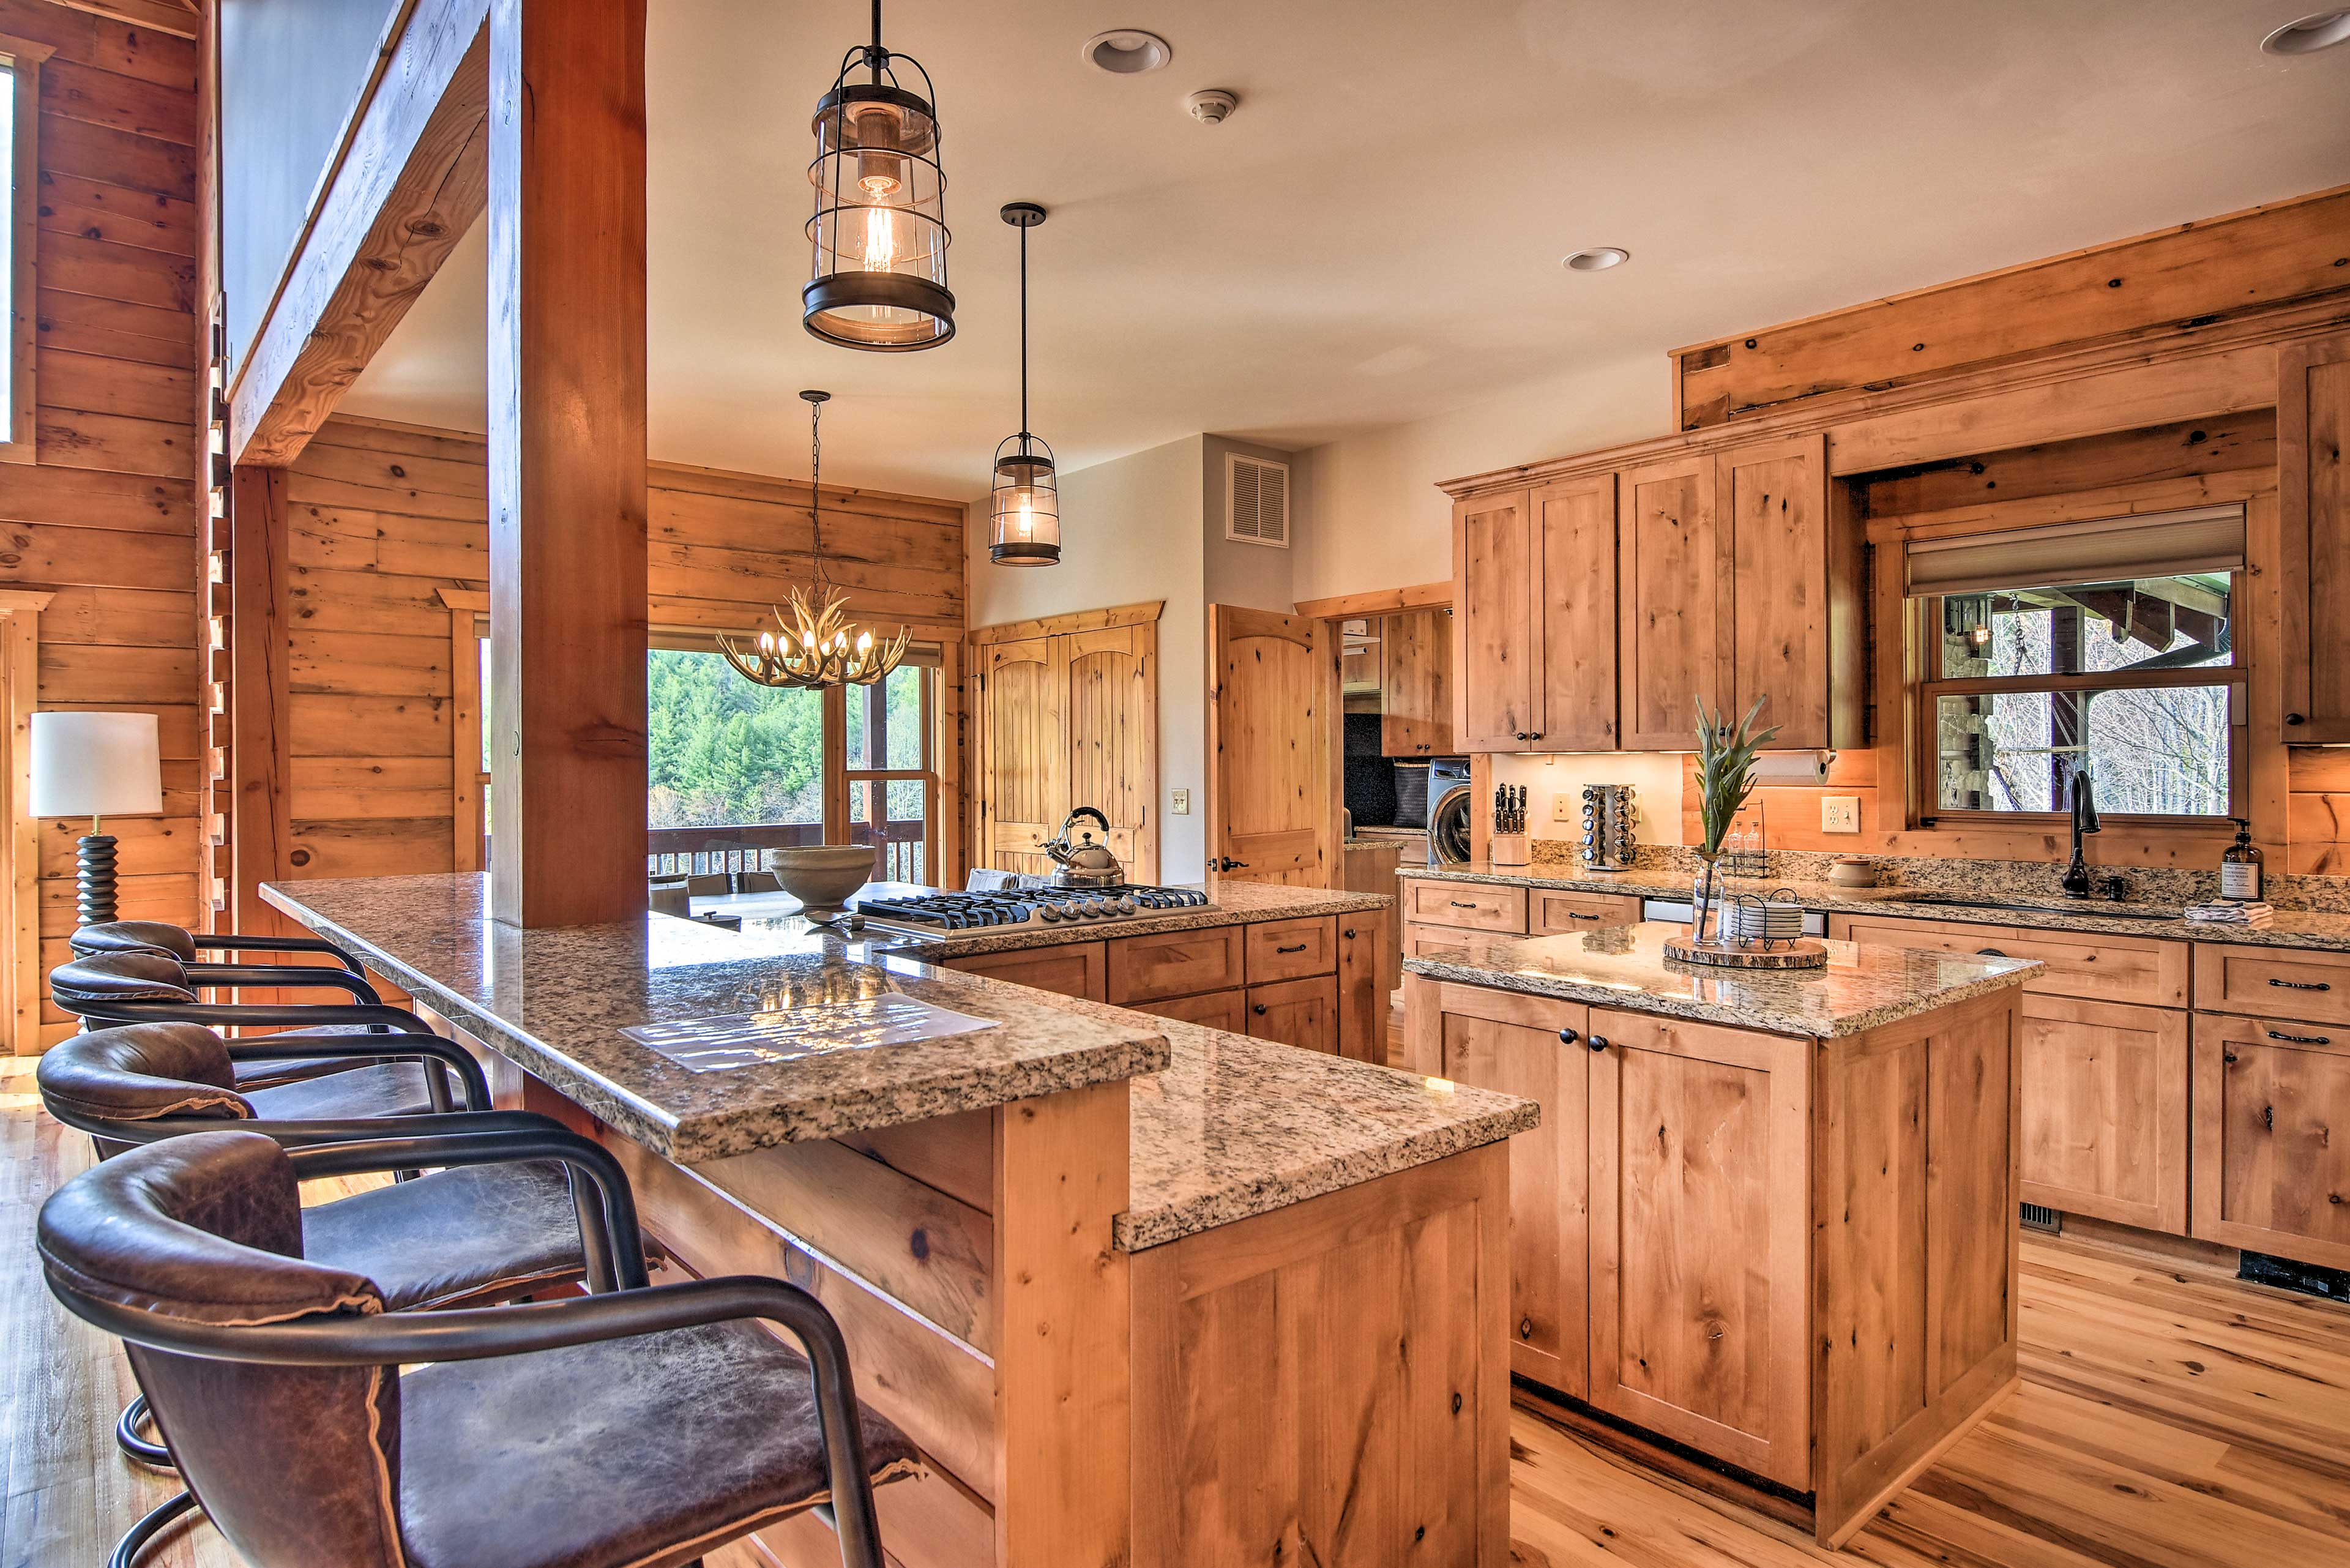 The interior offers 5,130 square feet of well-appointed living space.